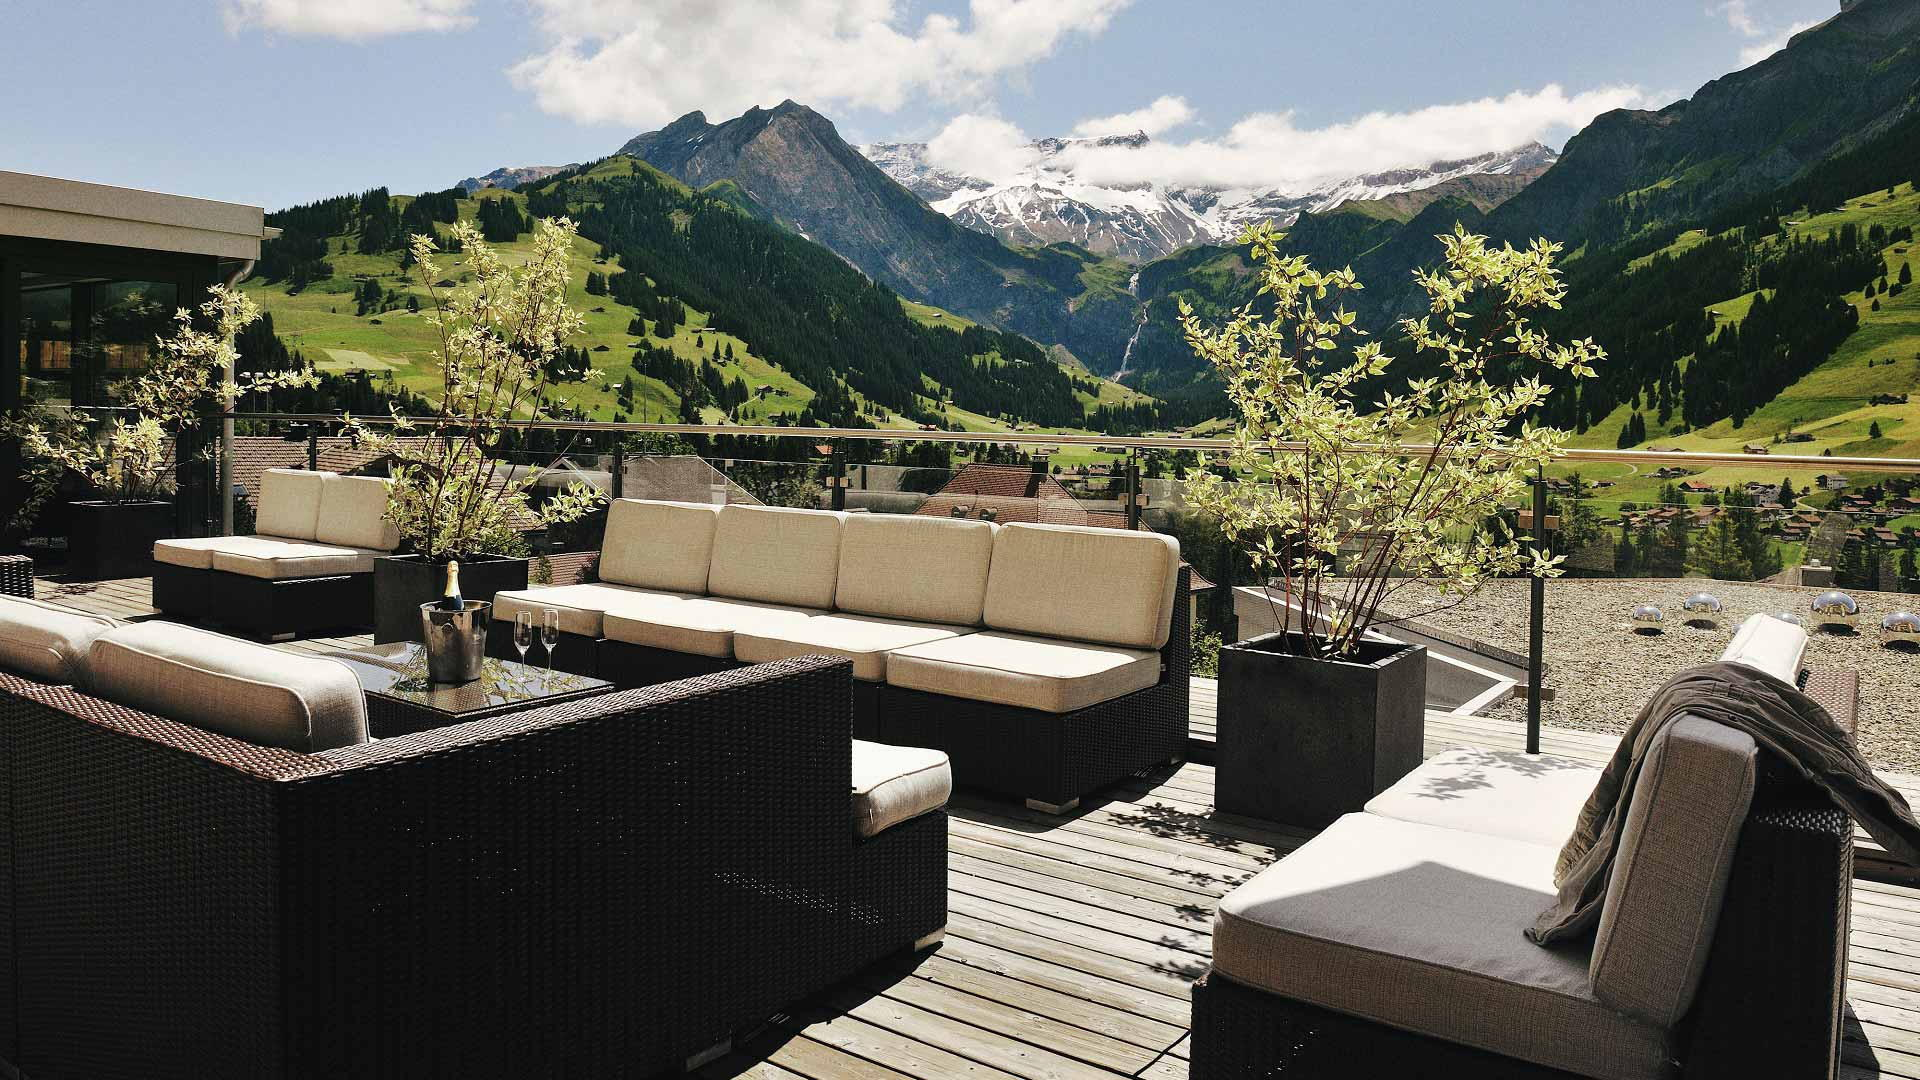 Luxury hotels in switzerland refined 5 star accommodation for Hotel design grisons